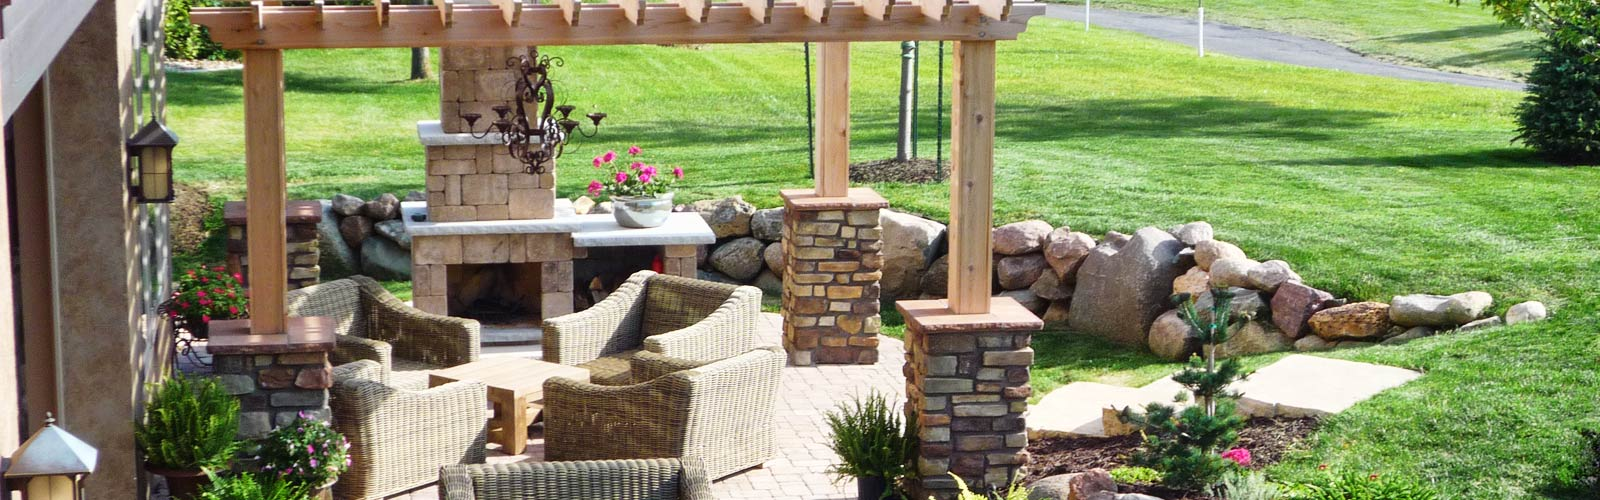 Retaining Wall Block Des Moines : Landscaping design services for des moines earthly possibilities